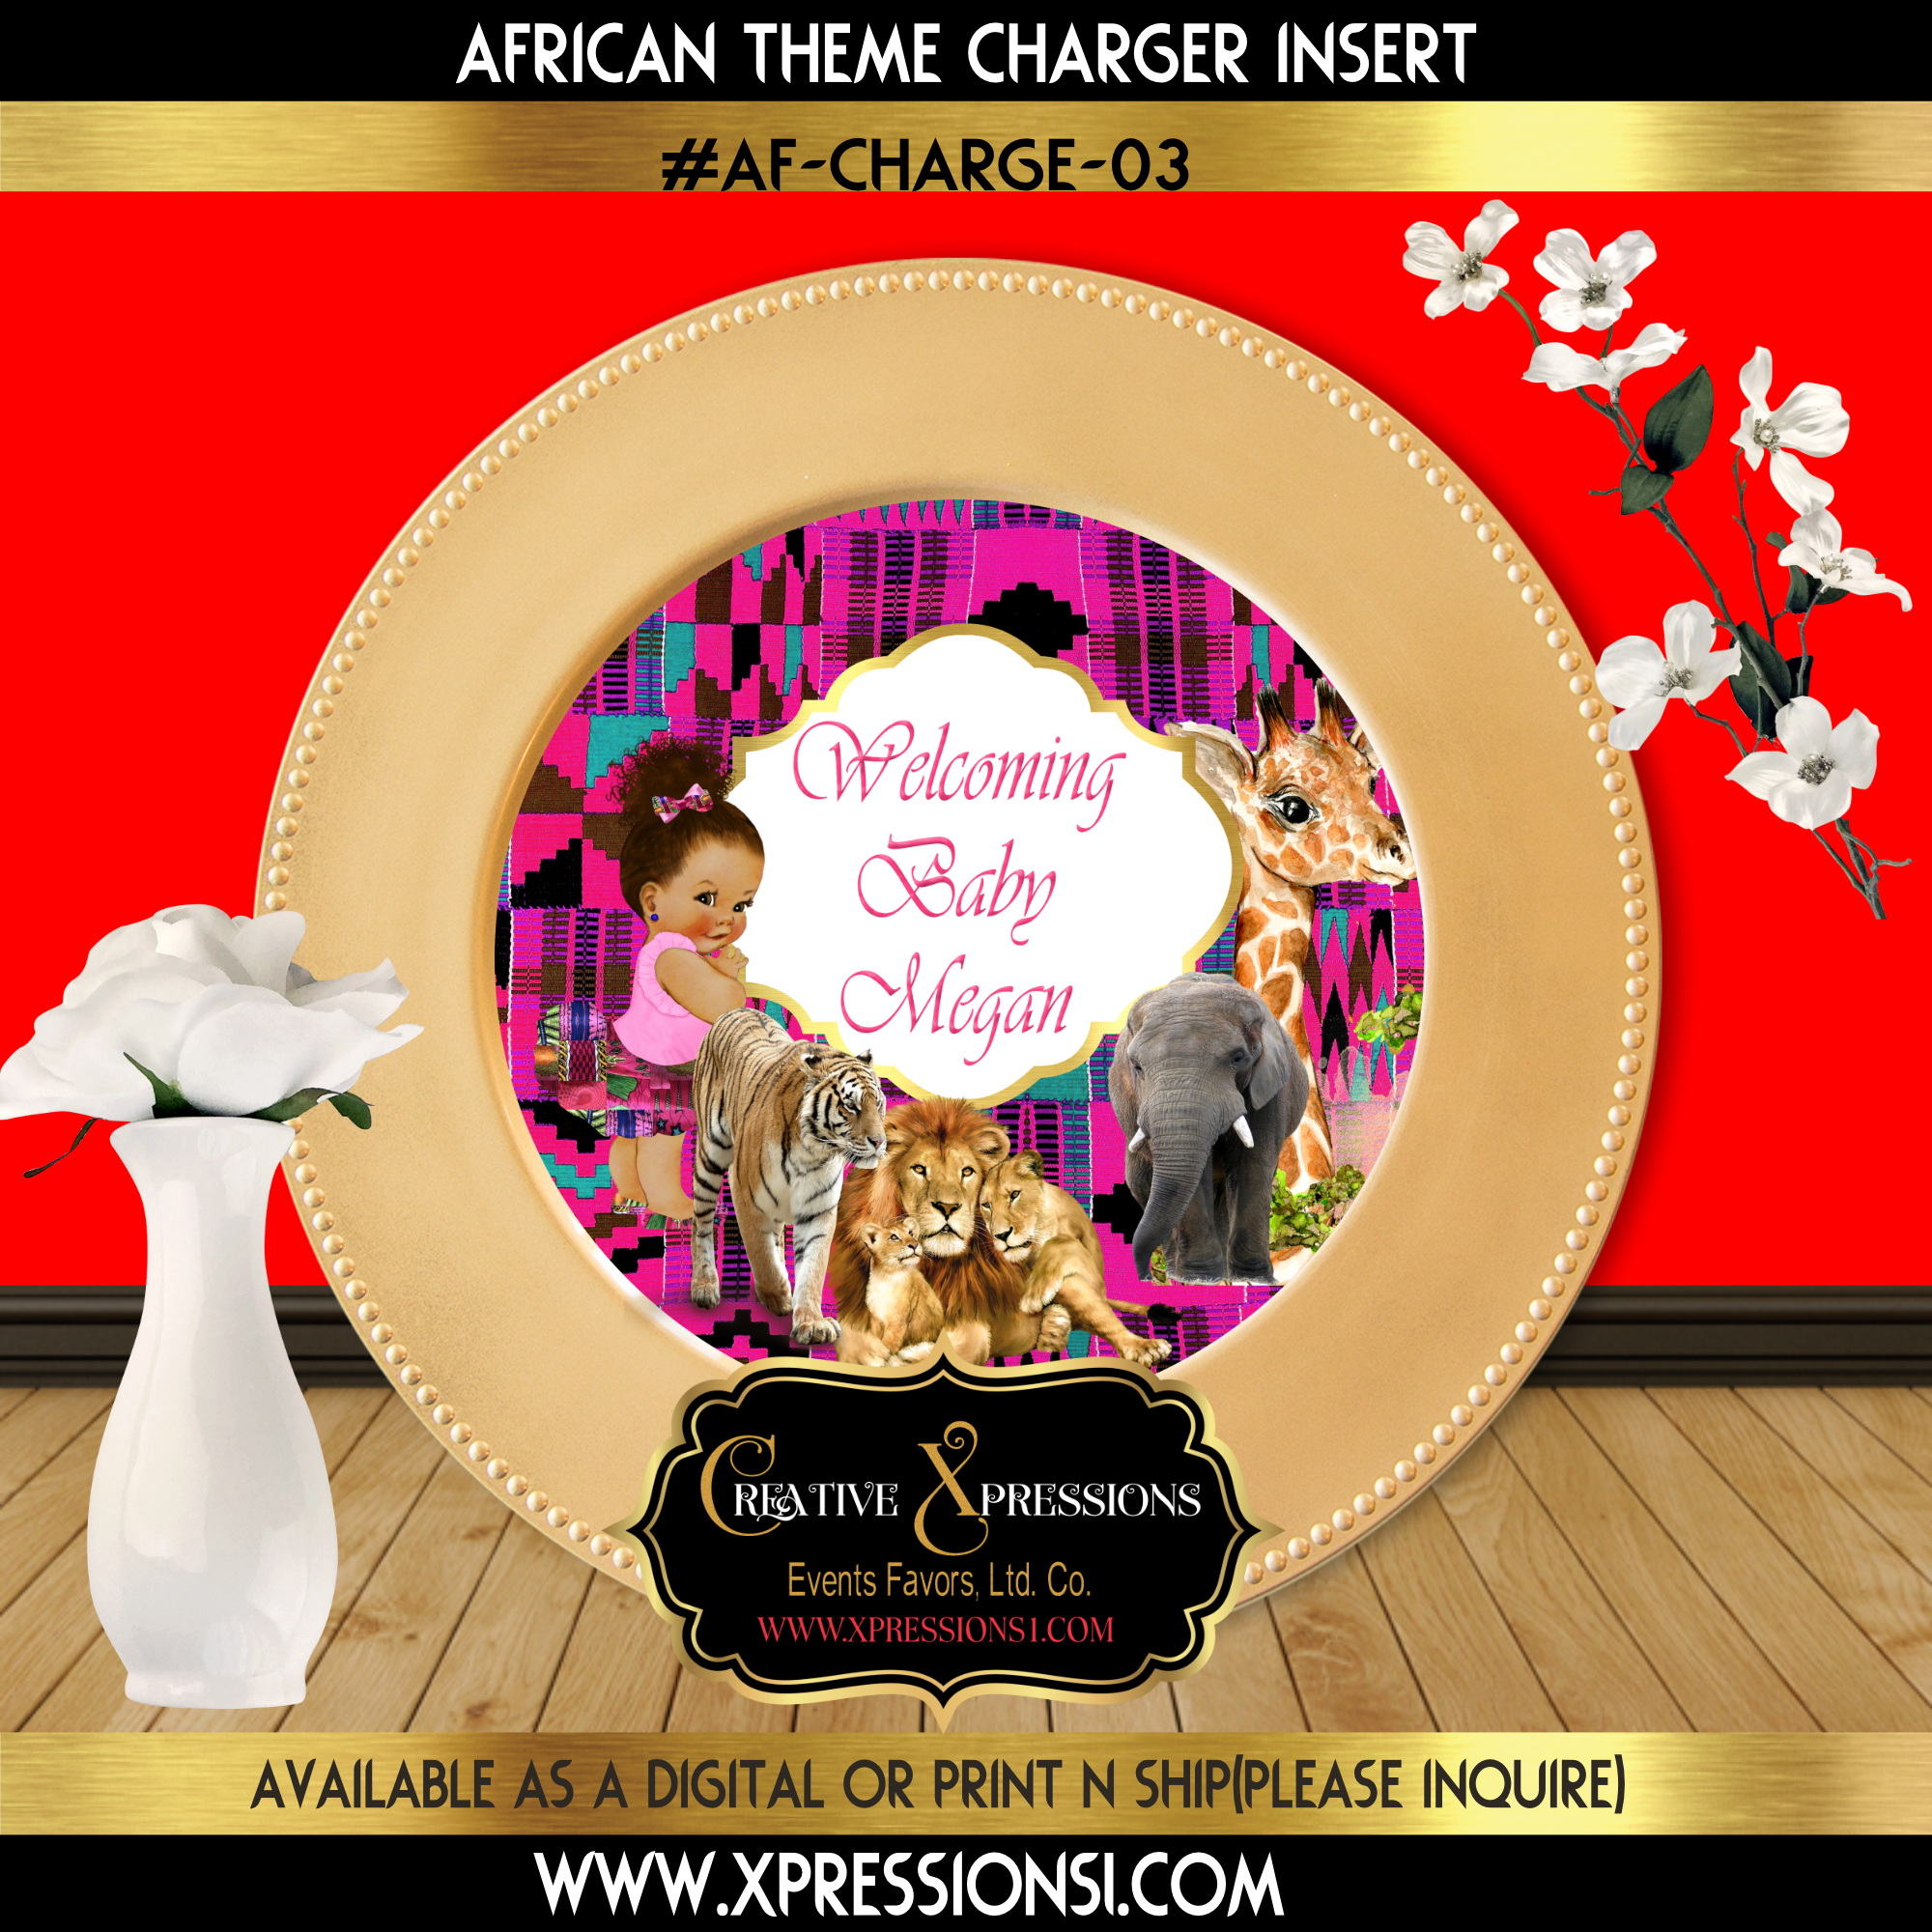 Safari Pink Theme Charger Insert